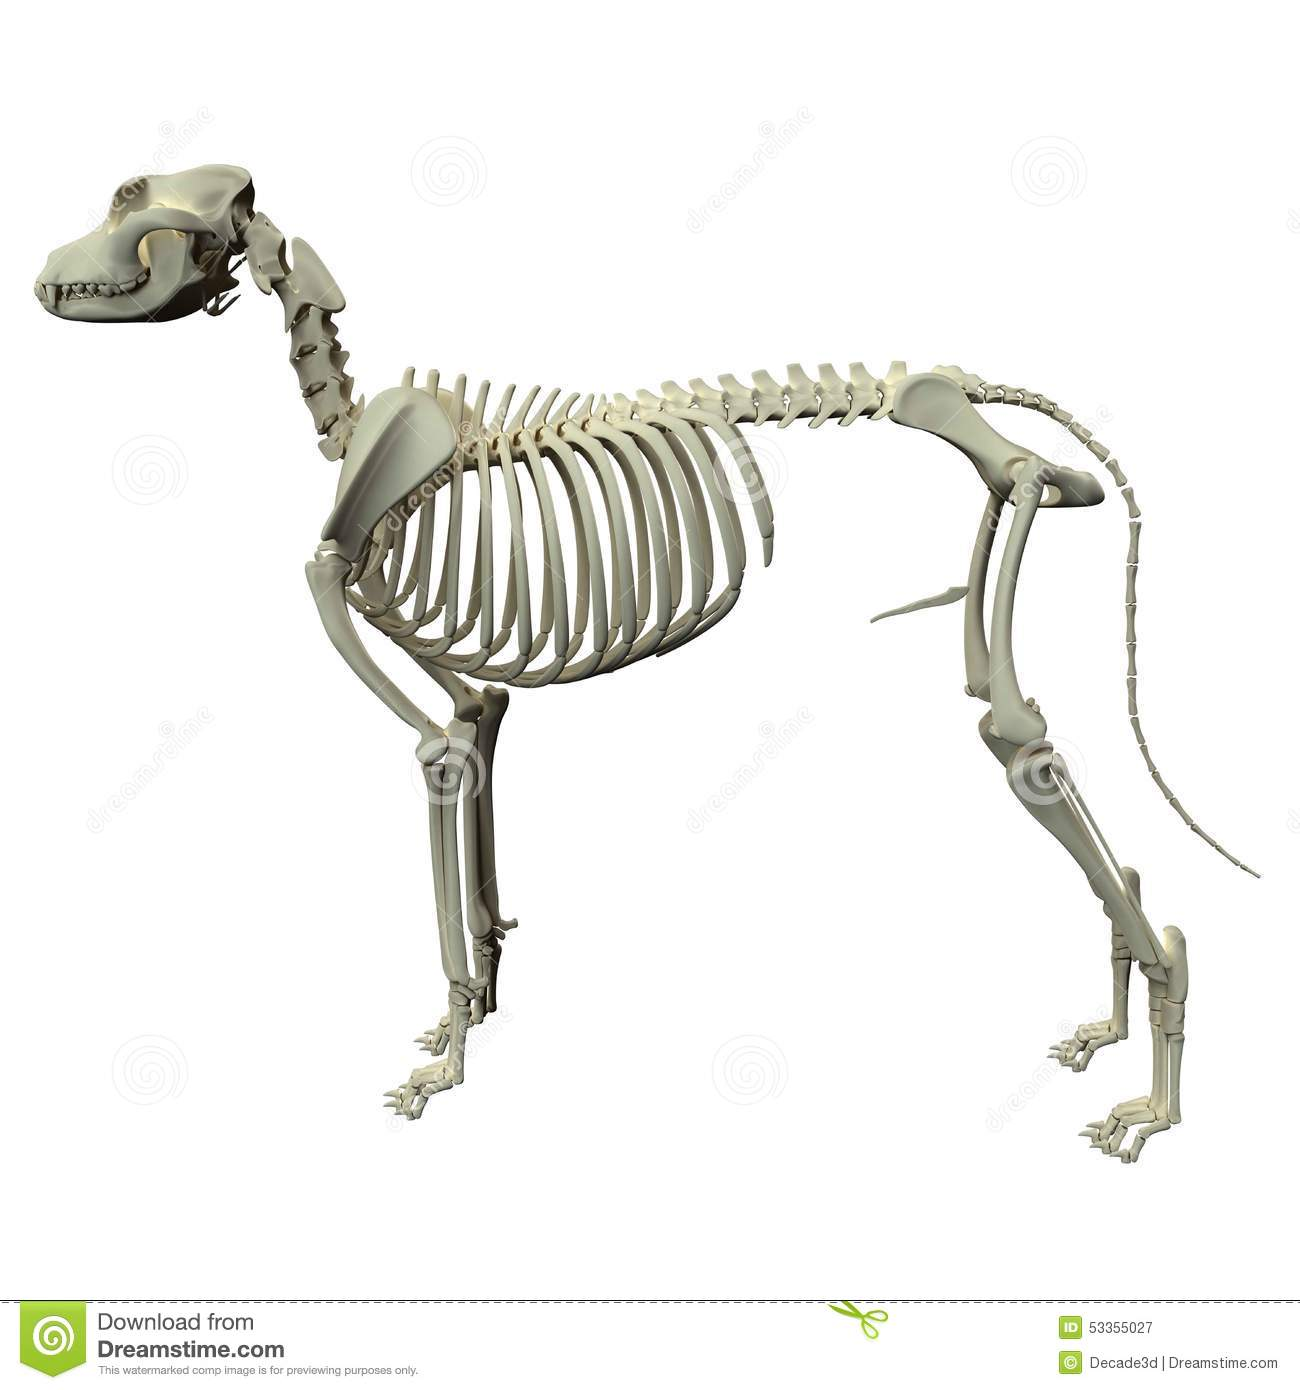 skunk skeleton diagram cross functional dog anatomy of a male